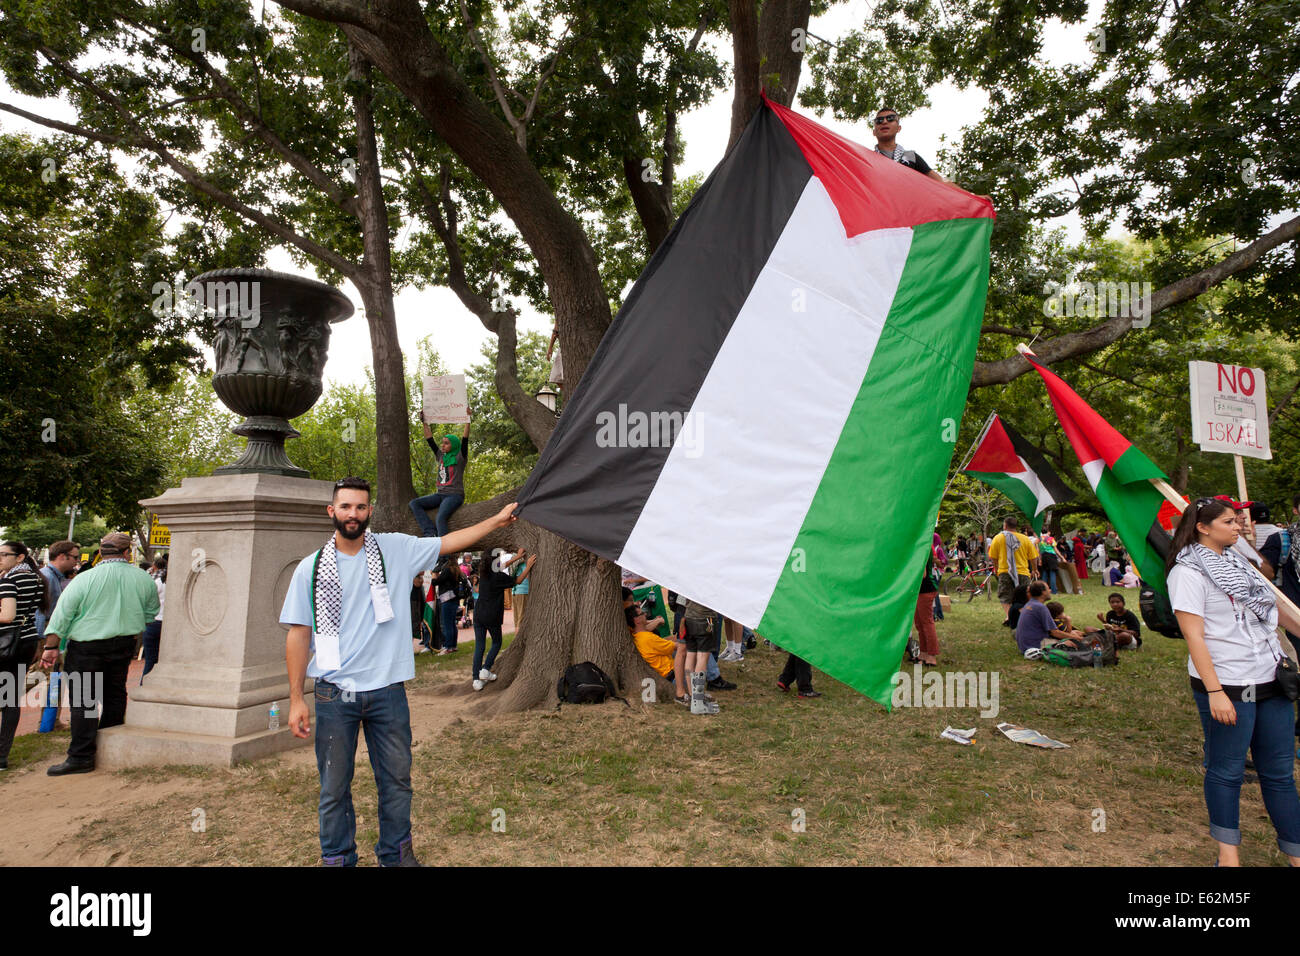 Pro-Palestine protesters holding large Palestinian flag - Washington, DC USA - Stock Image